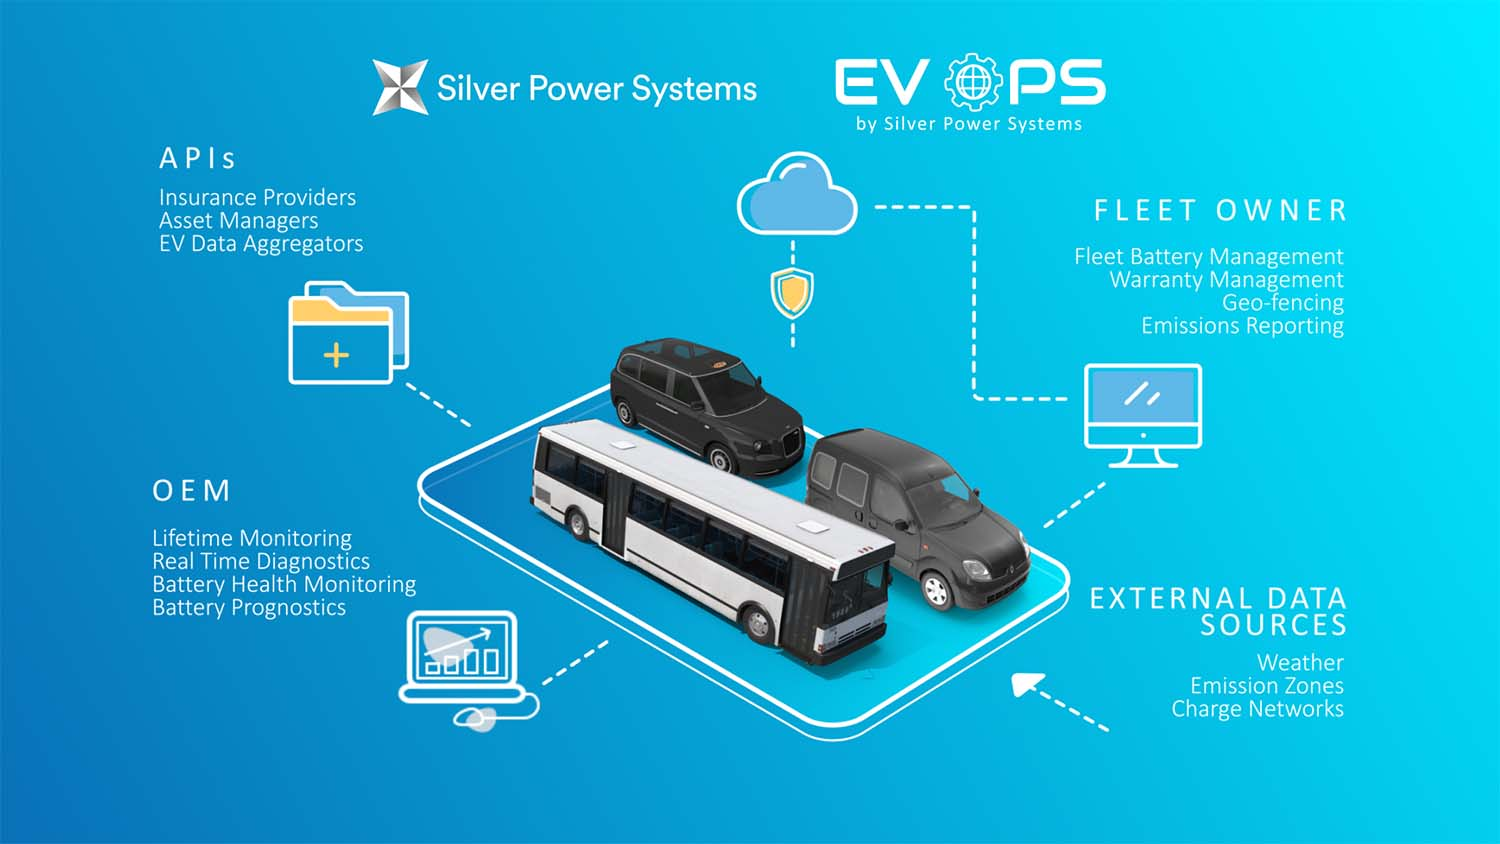 Pioneering EV Trial Results In World's Most Advanced Battery 'digital Twin' Capable Of Predicting Battery Lifetime